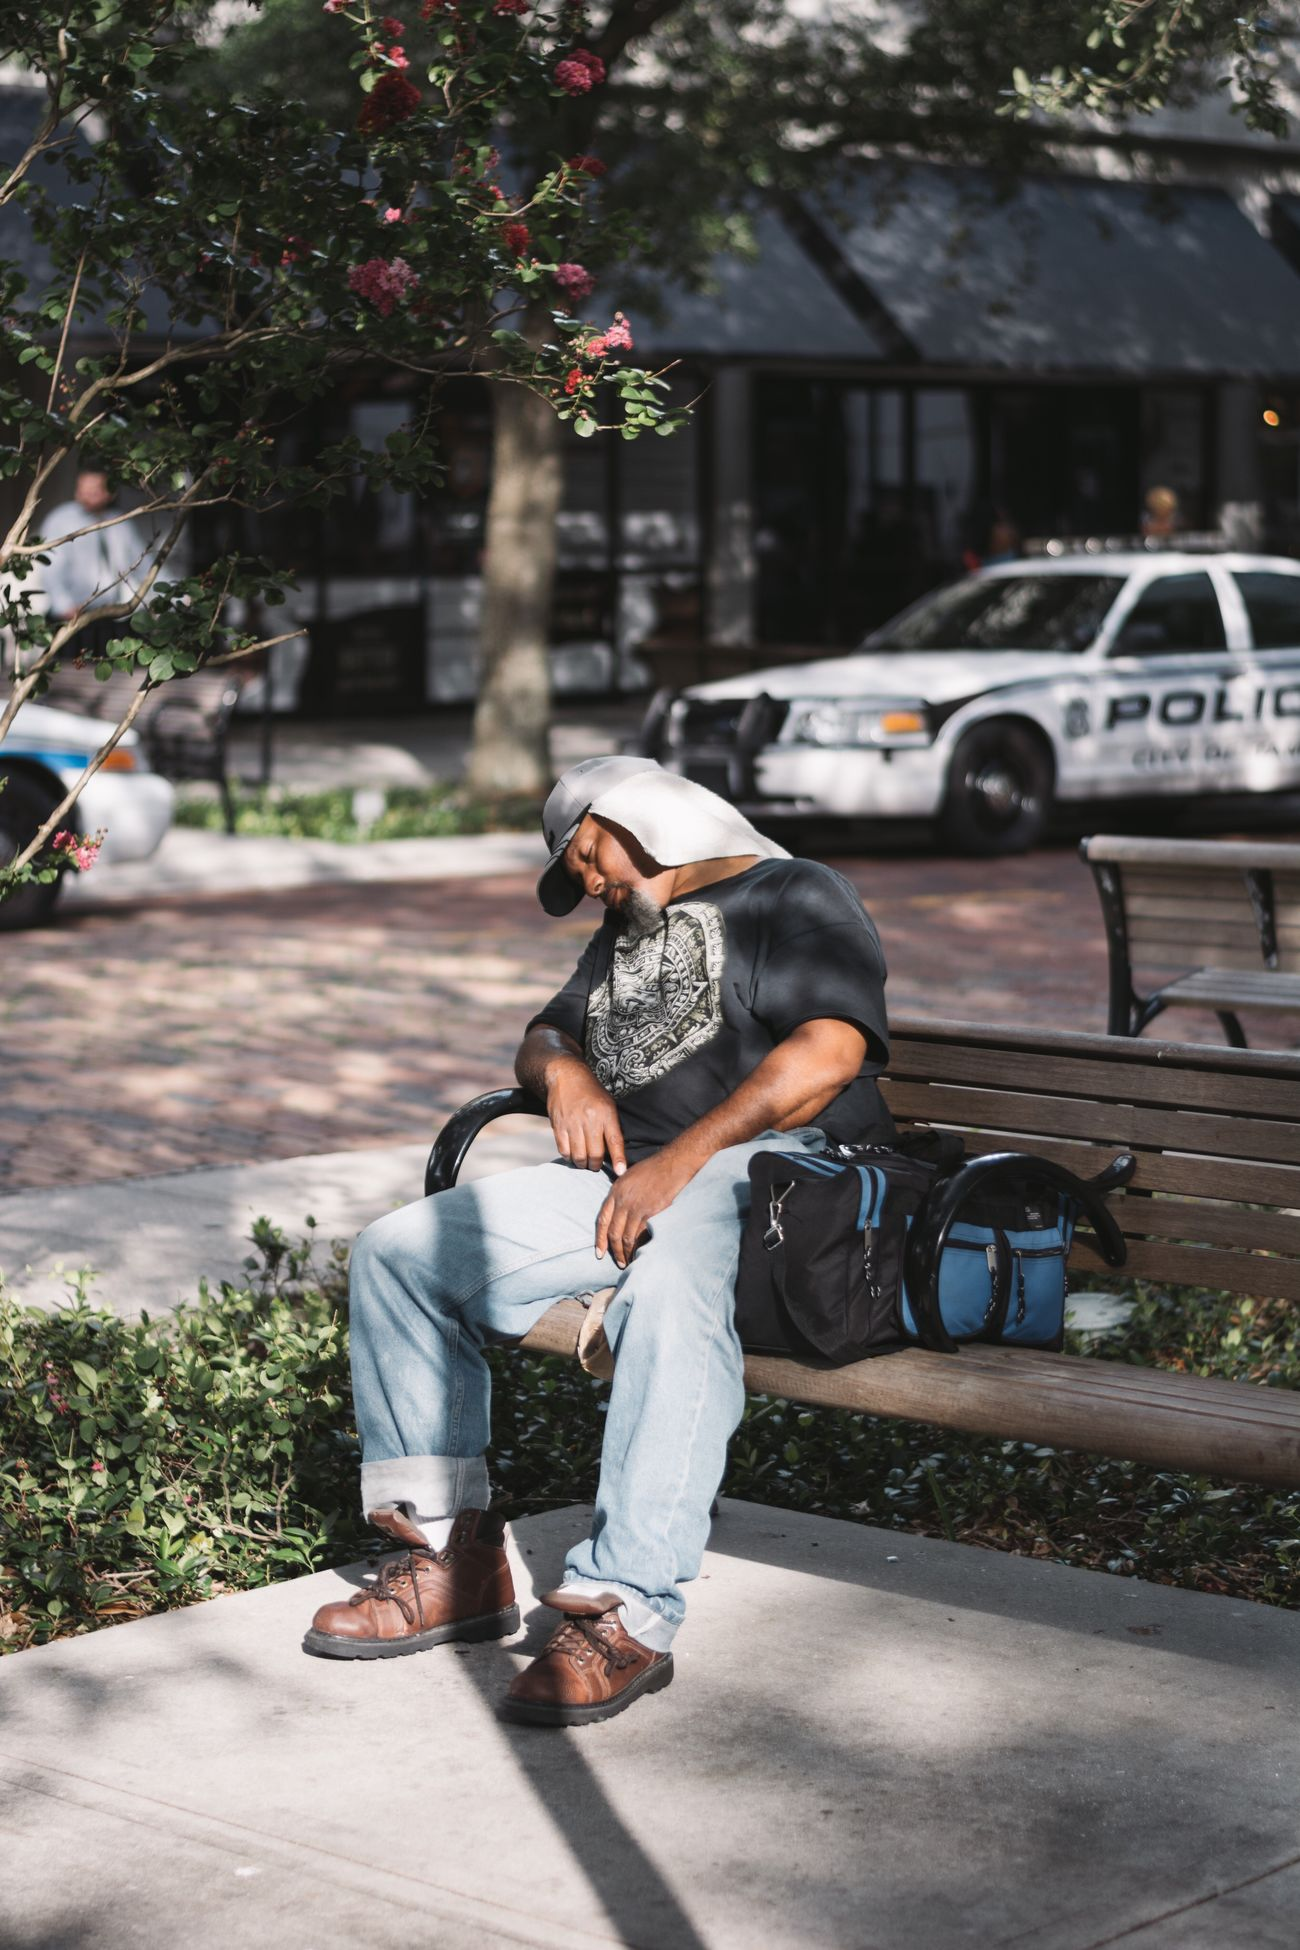 This past week had me like ShootAndExplore VSCO Urban Street Portraits Tampa Florida